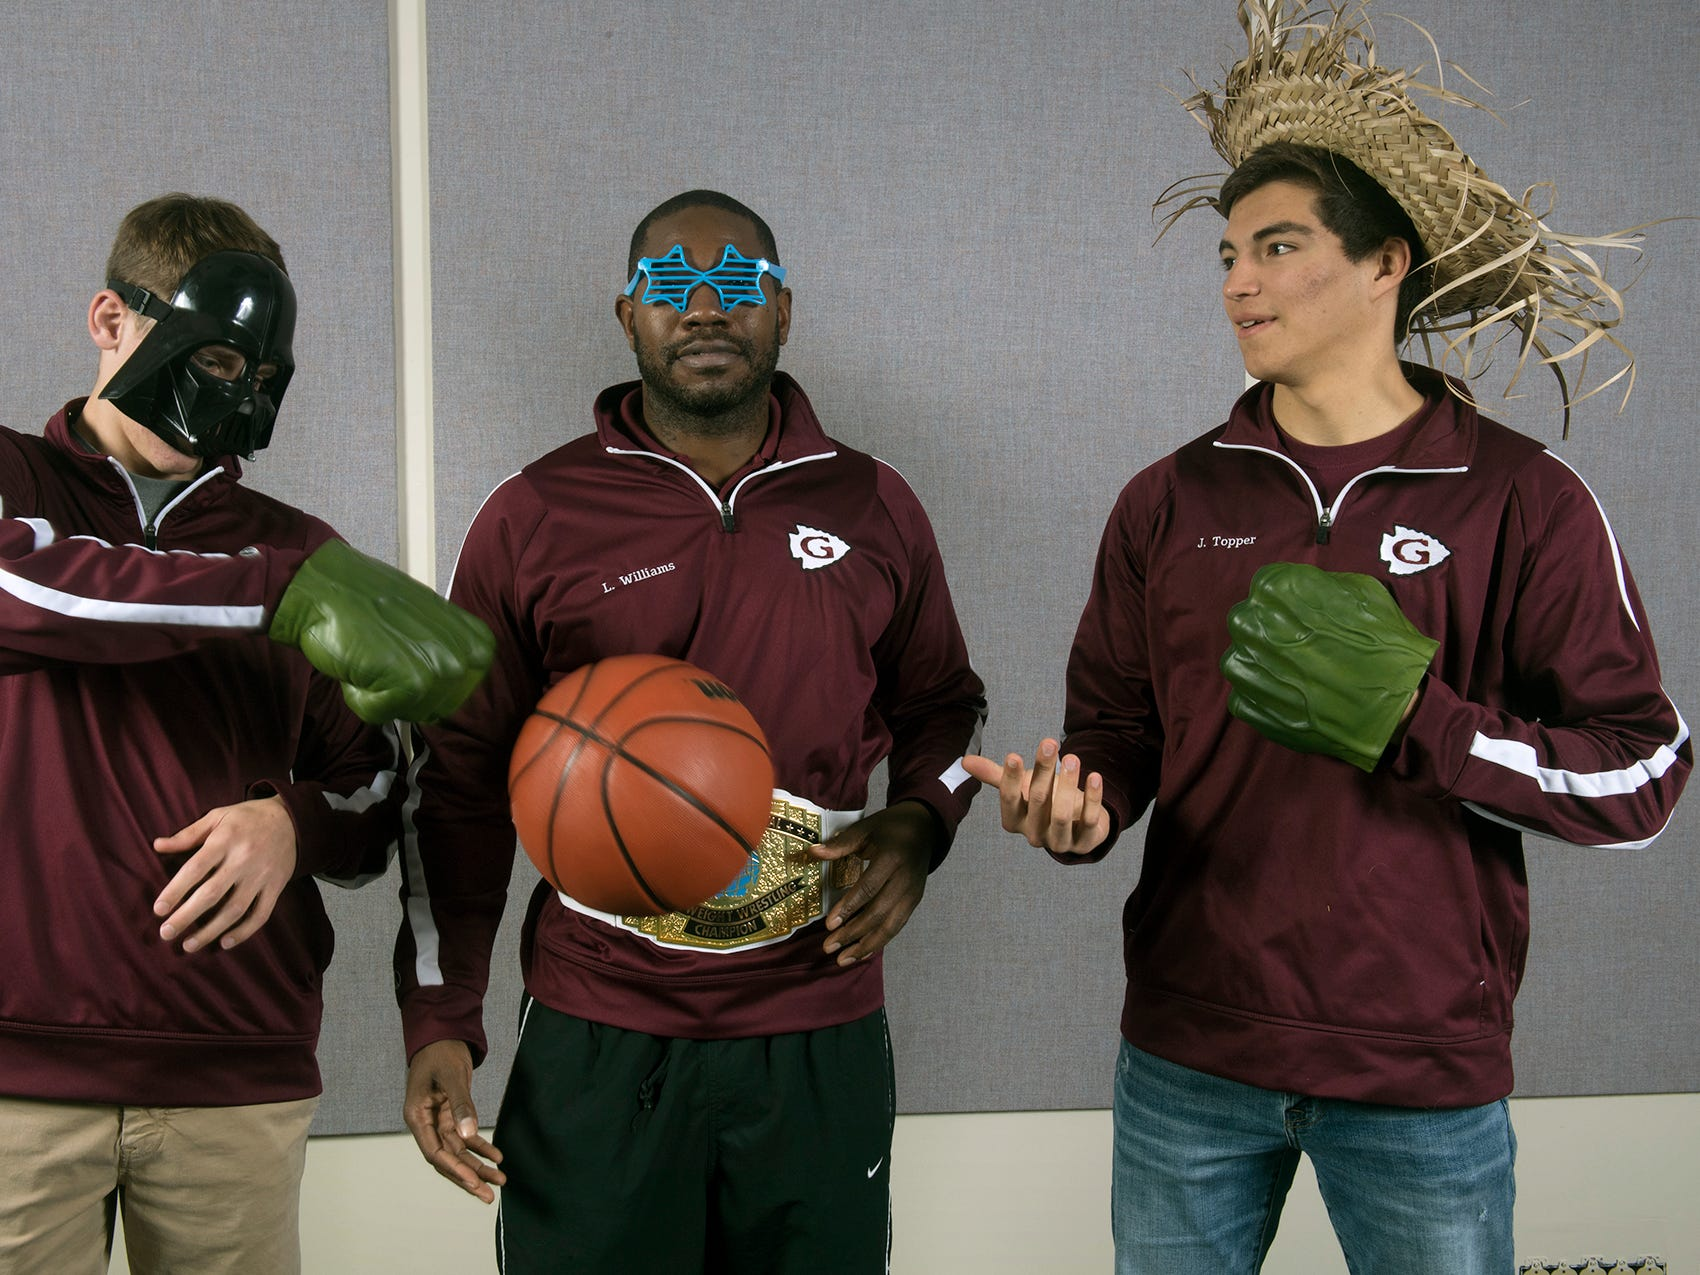 From the left, David James, Coach Lawrence Williams and Josh Topper, of the Gettysburg boys basketball, pose during the 2018-19 GameTimePa YAIAA Winter Media Day Sunday November 11, 2018.